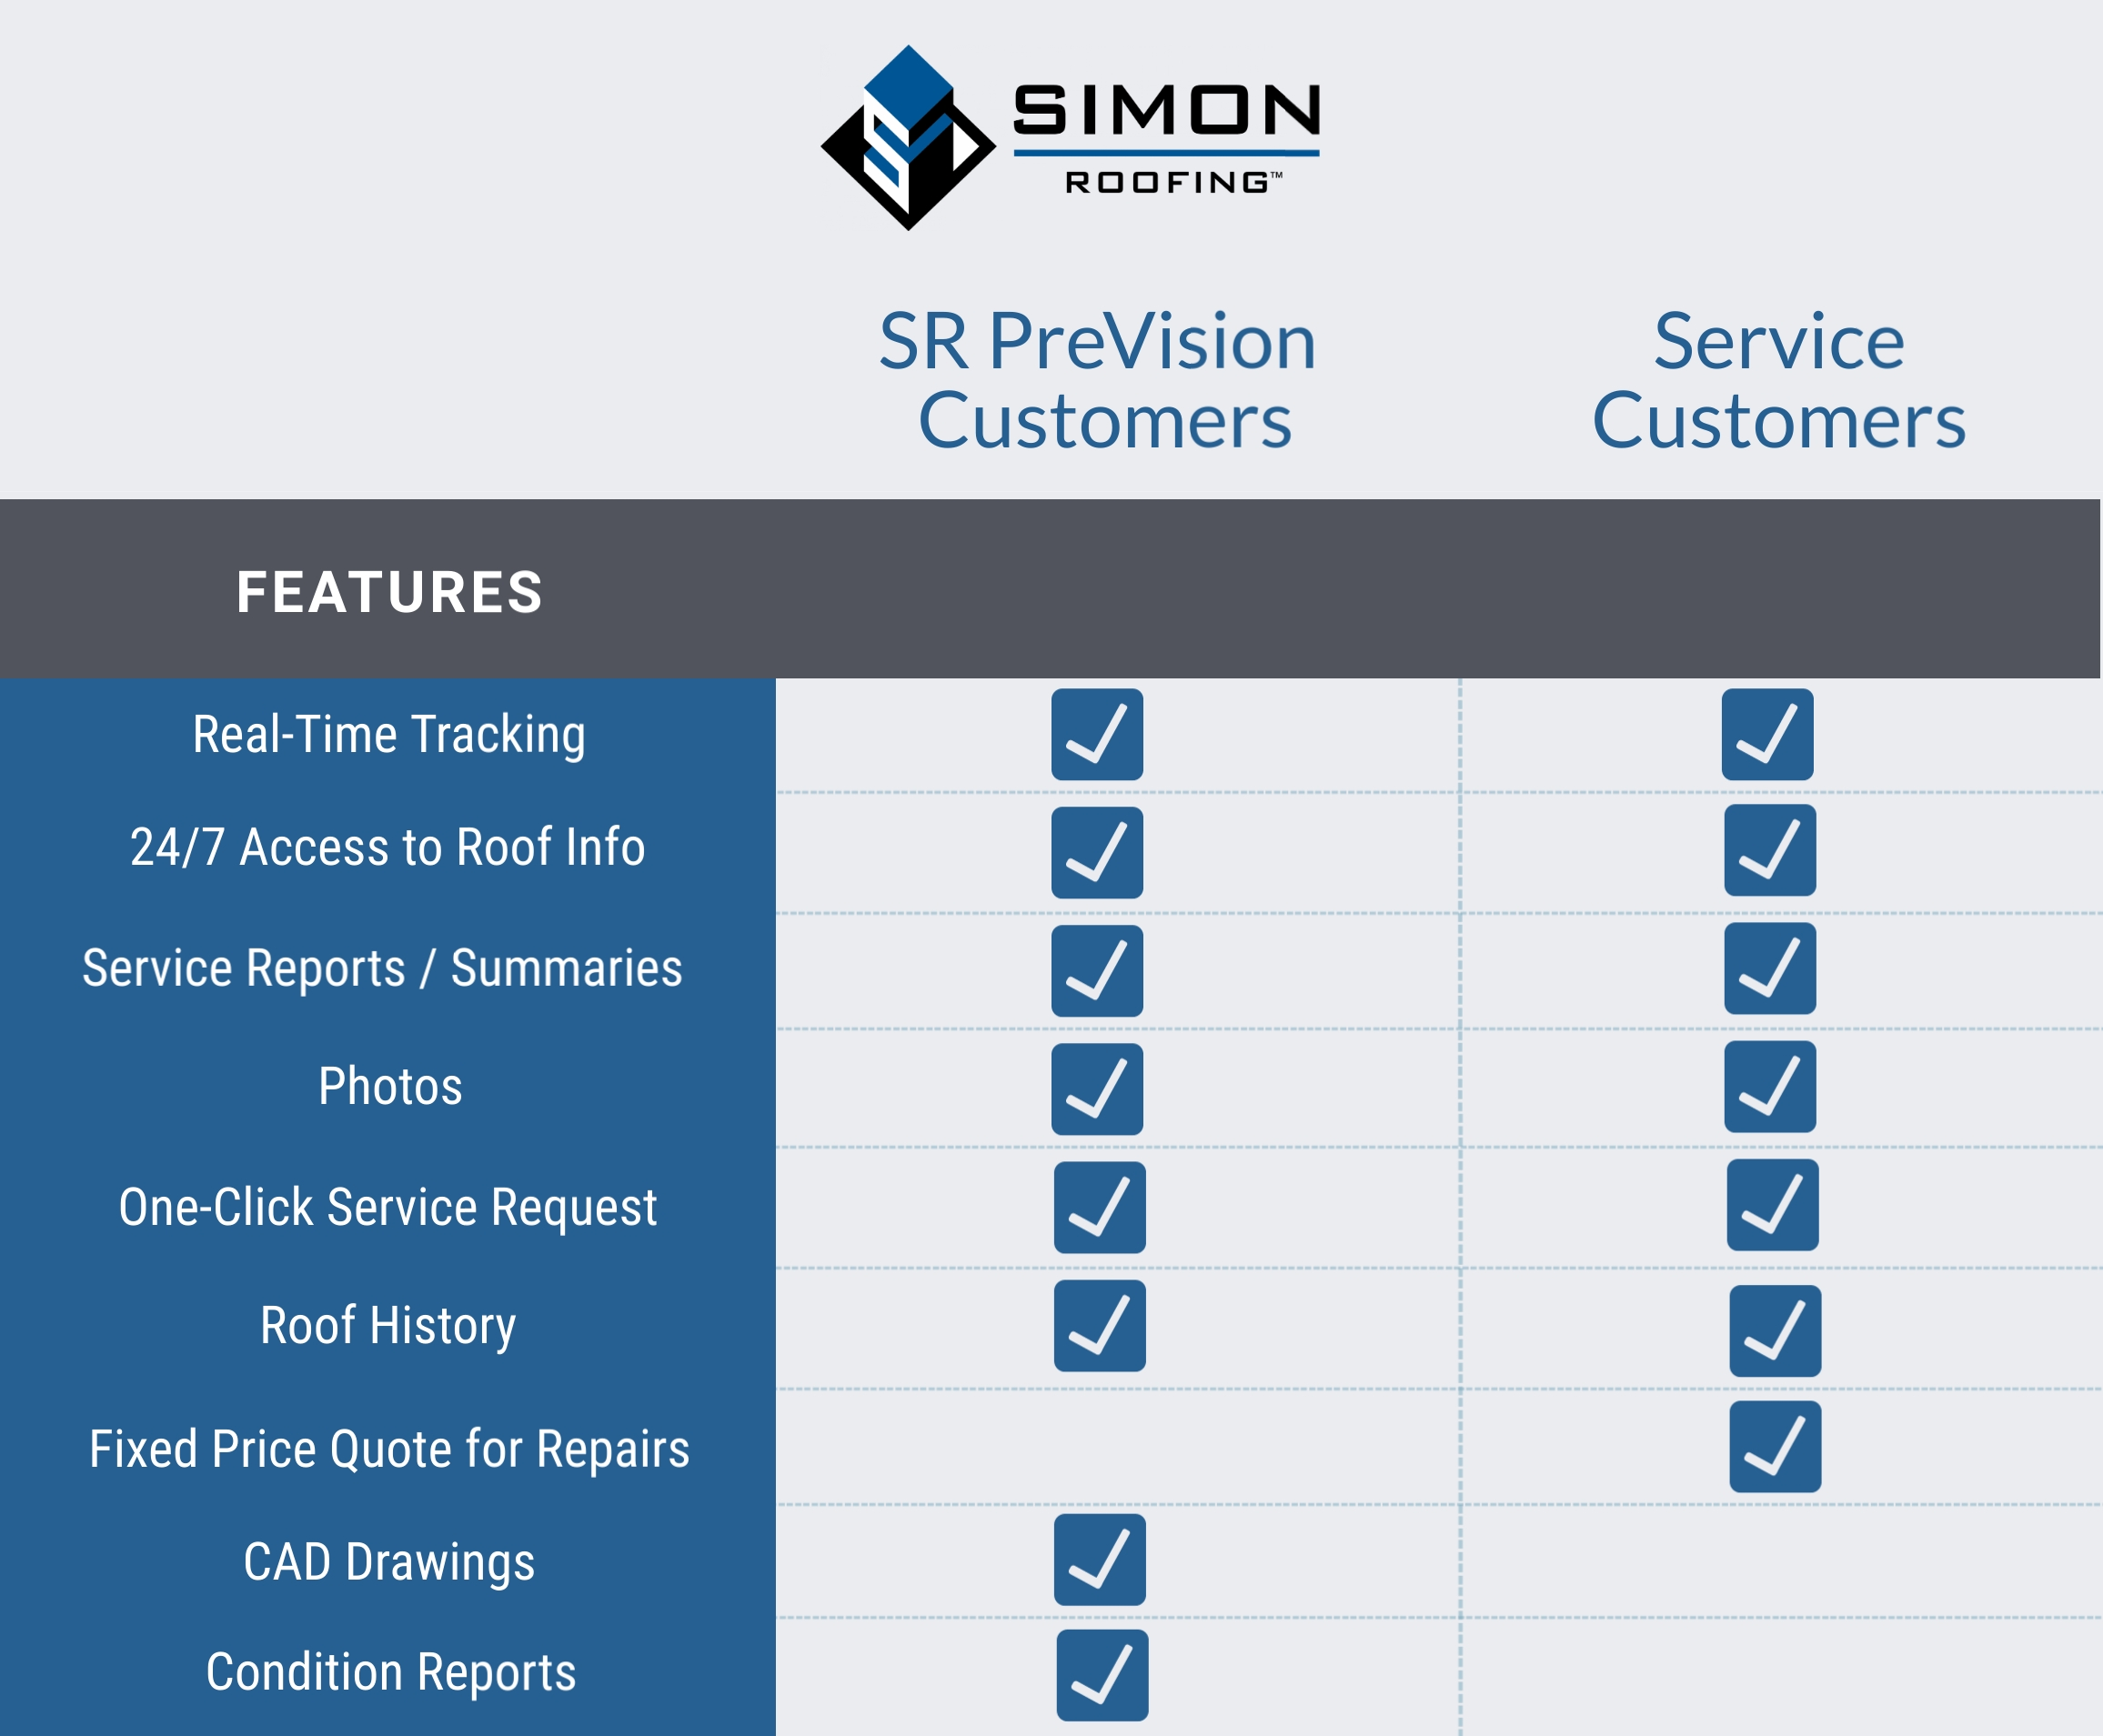 Simon Roofing's SR PreVision Customers and Service Customers comparison chart